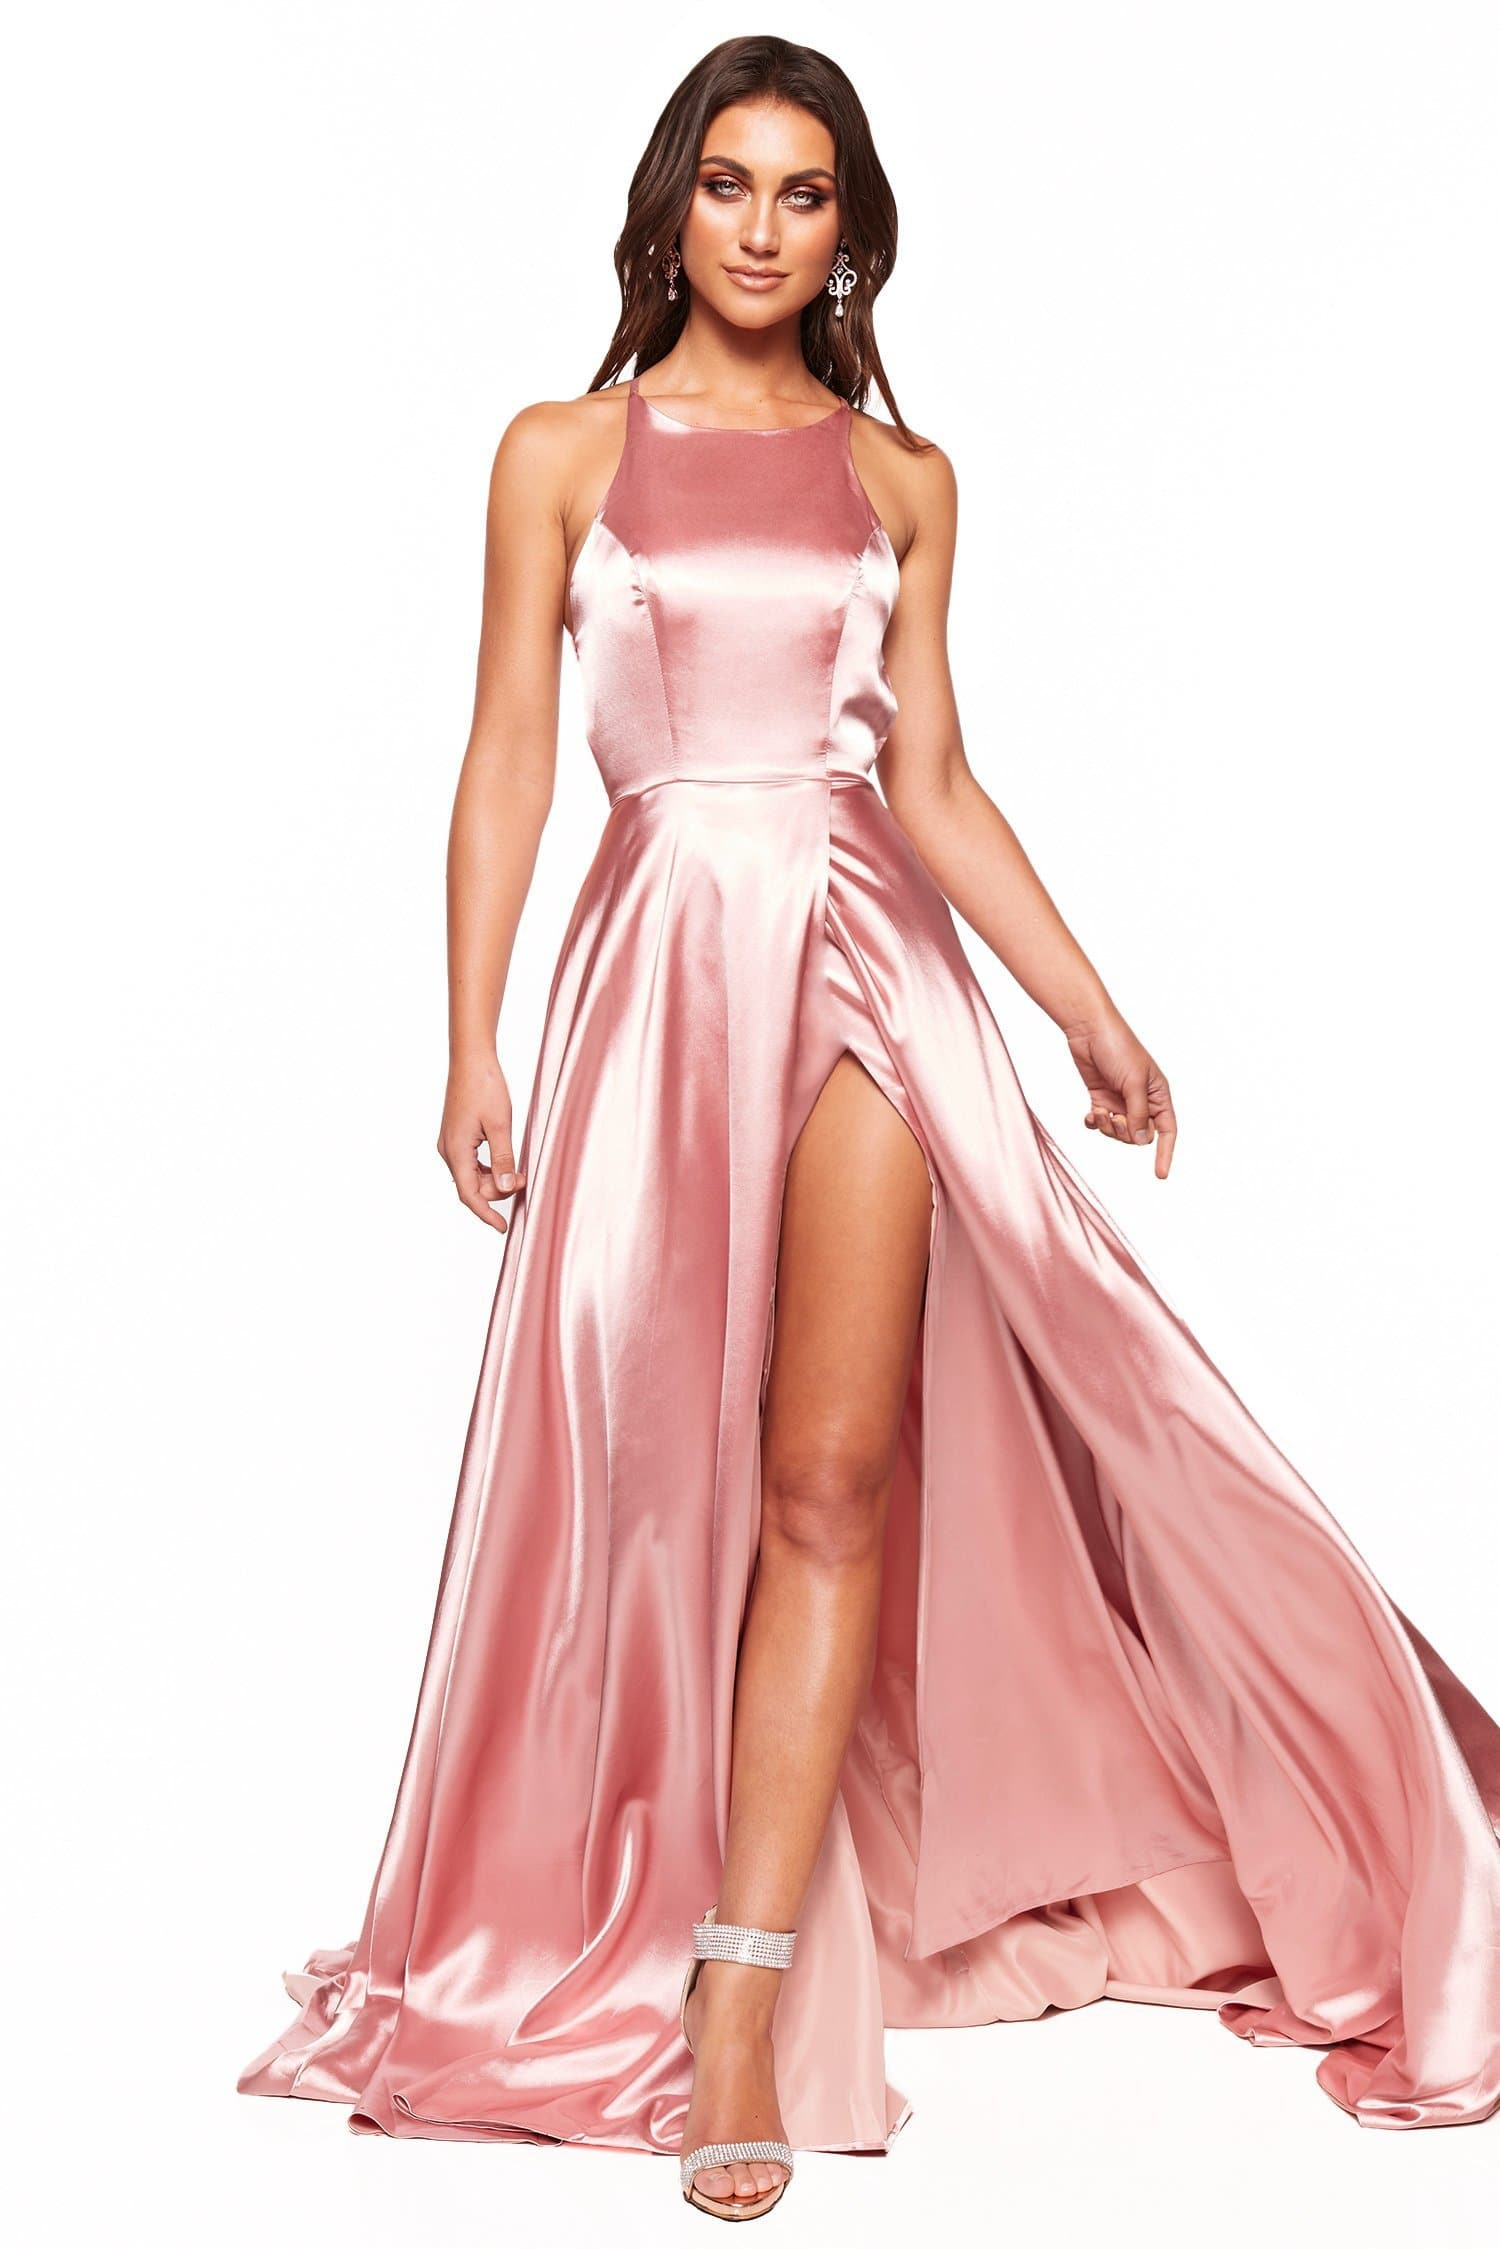 A&N Luxe Romina Satin Gown - Pink